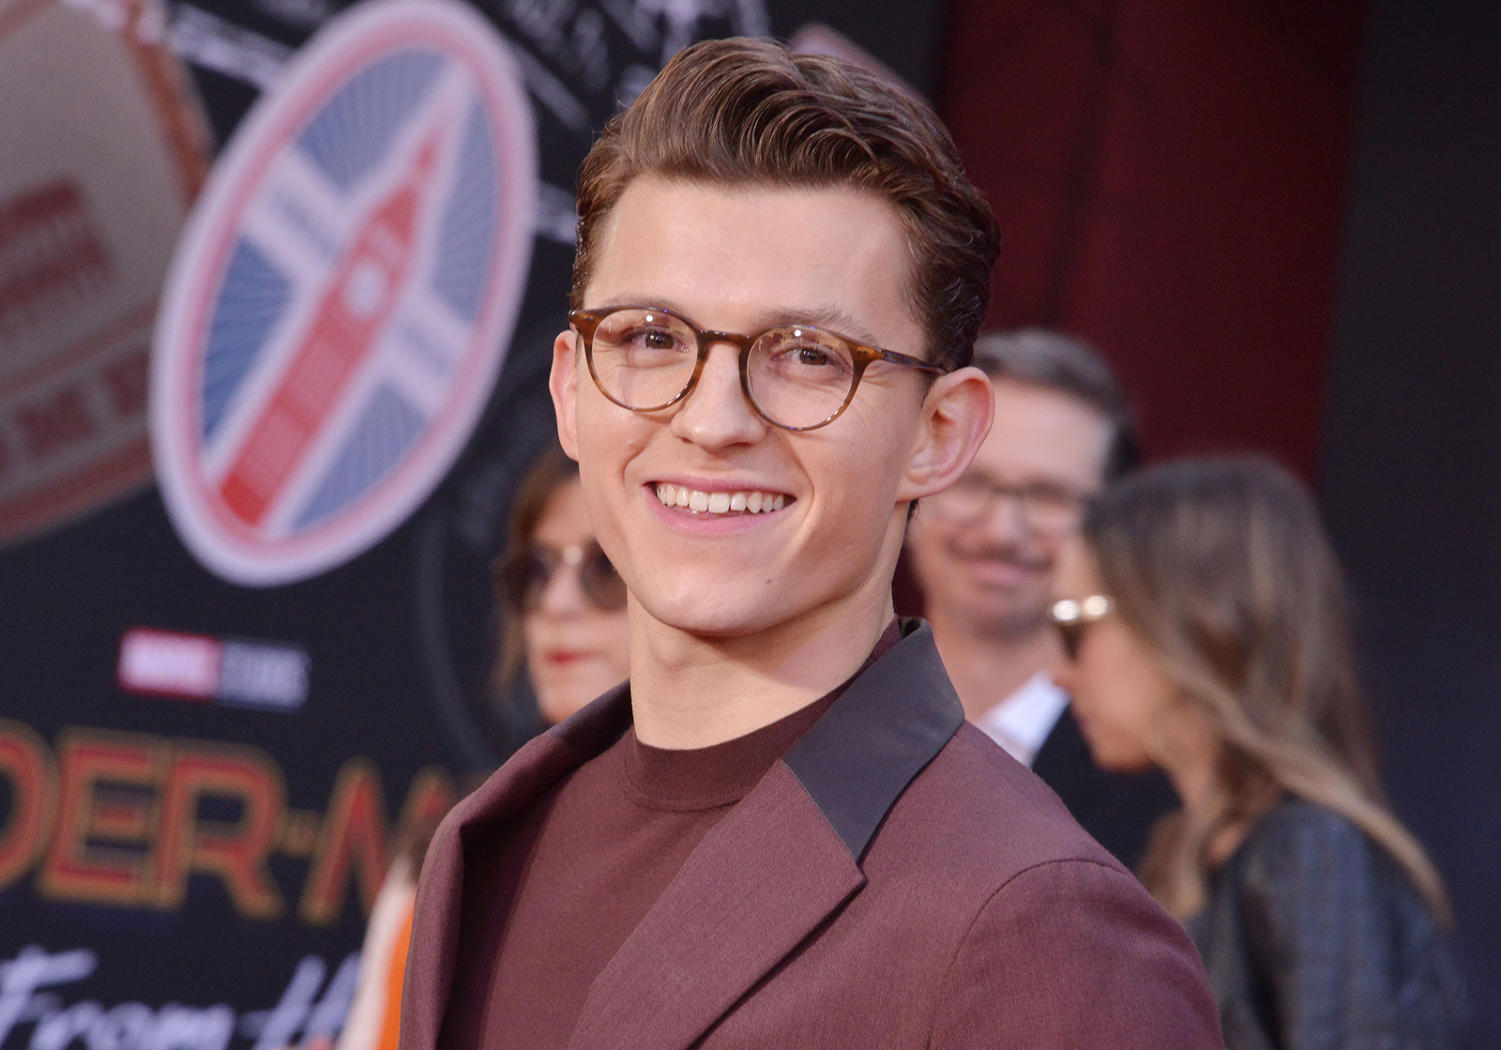 Tom Holland at the SPIDER-MAN FAR FROM HOME Los Angeles Premiere held at the TCL Chinese Theater in Hollywood, CA on Wednesday, June 26, 2019.